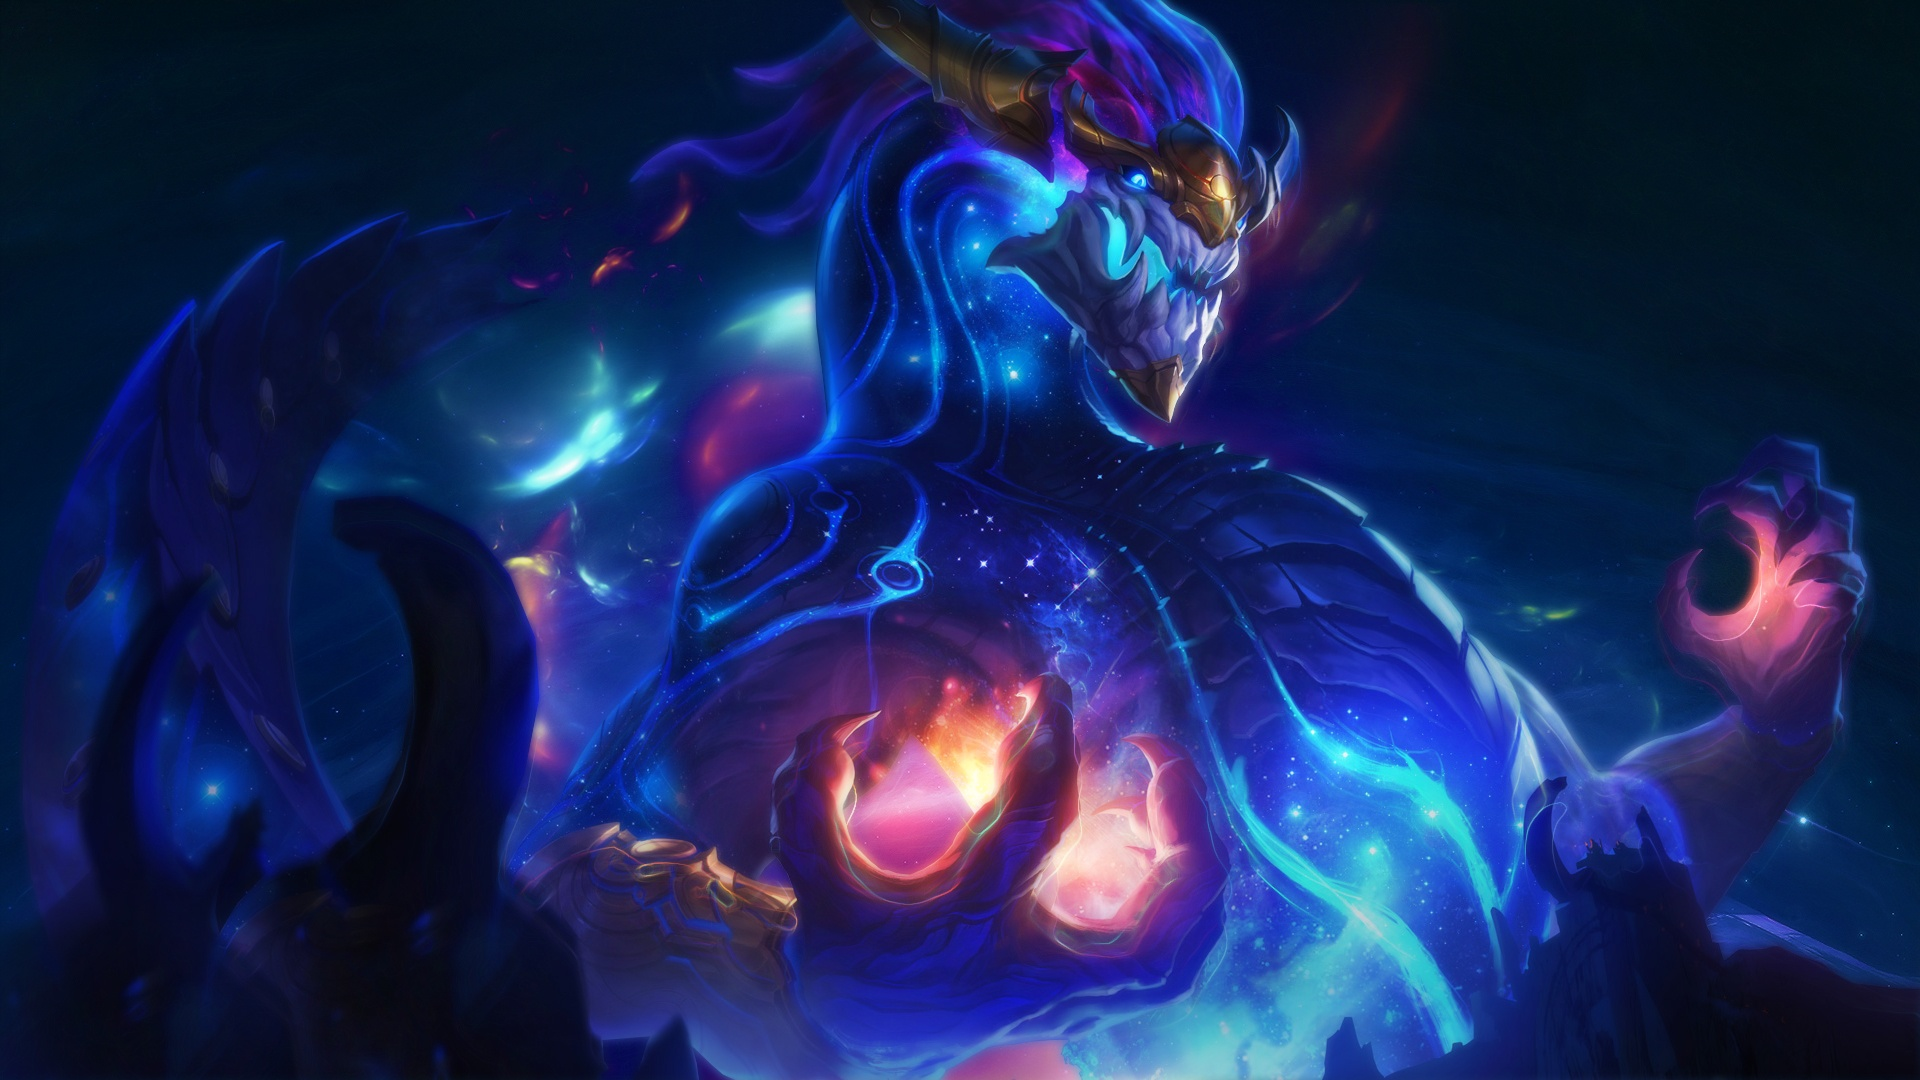 Aurelion Sol League Of Legends Wallpapers In Jpg Format For Free